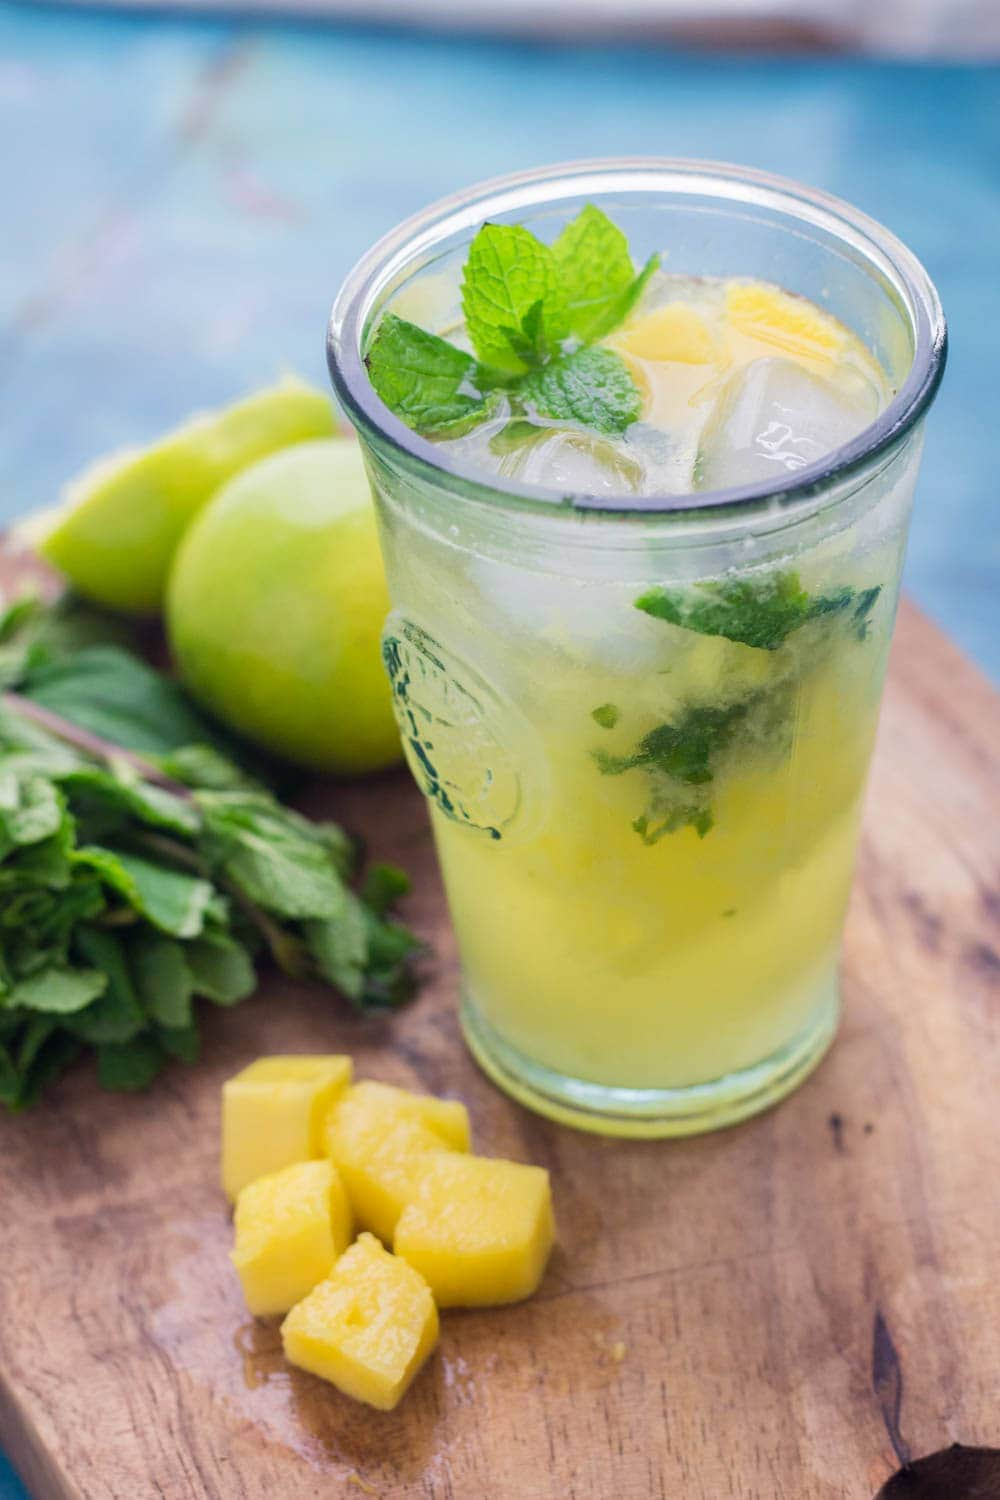 Serve these mango mojitos and Cuban fish tacos at your next party! The mojito uses a classic recipe with a delicious tropical twist.